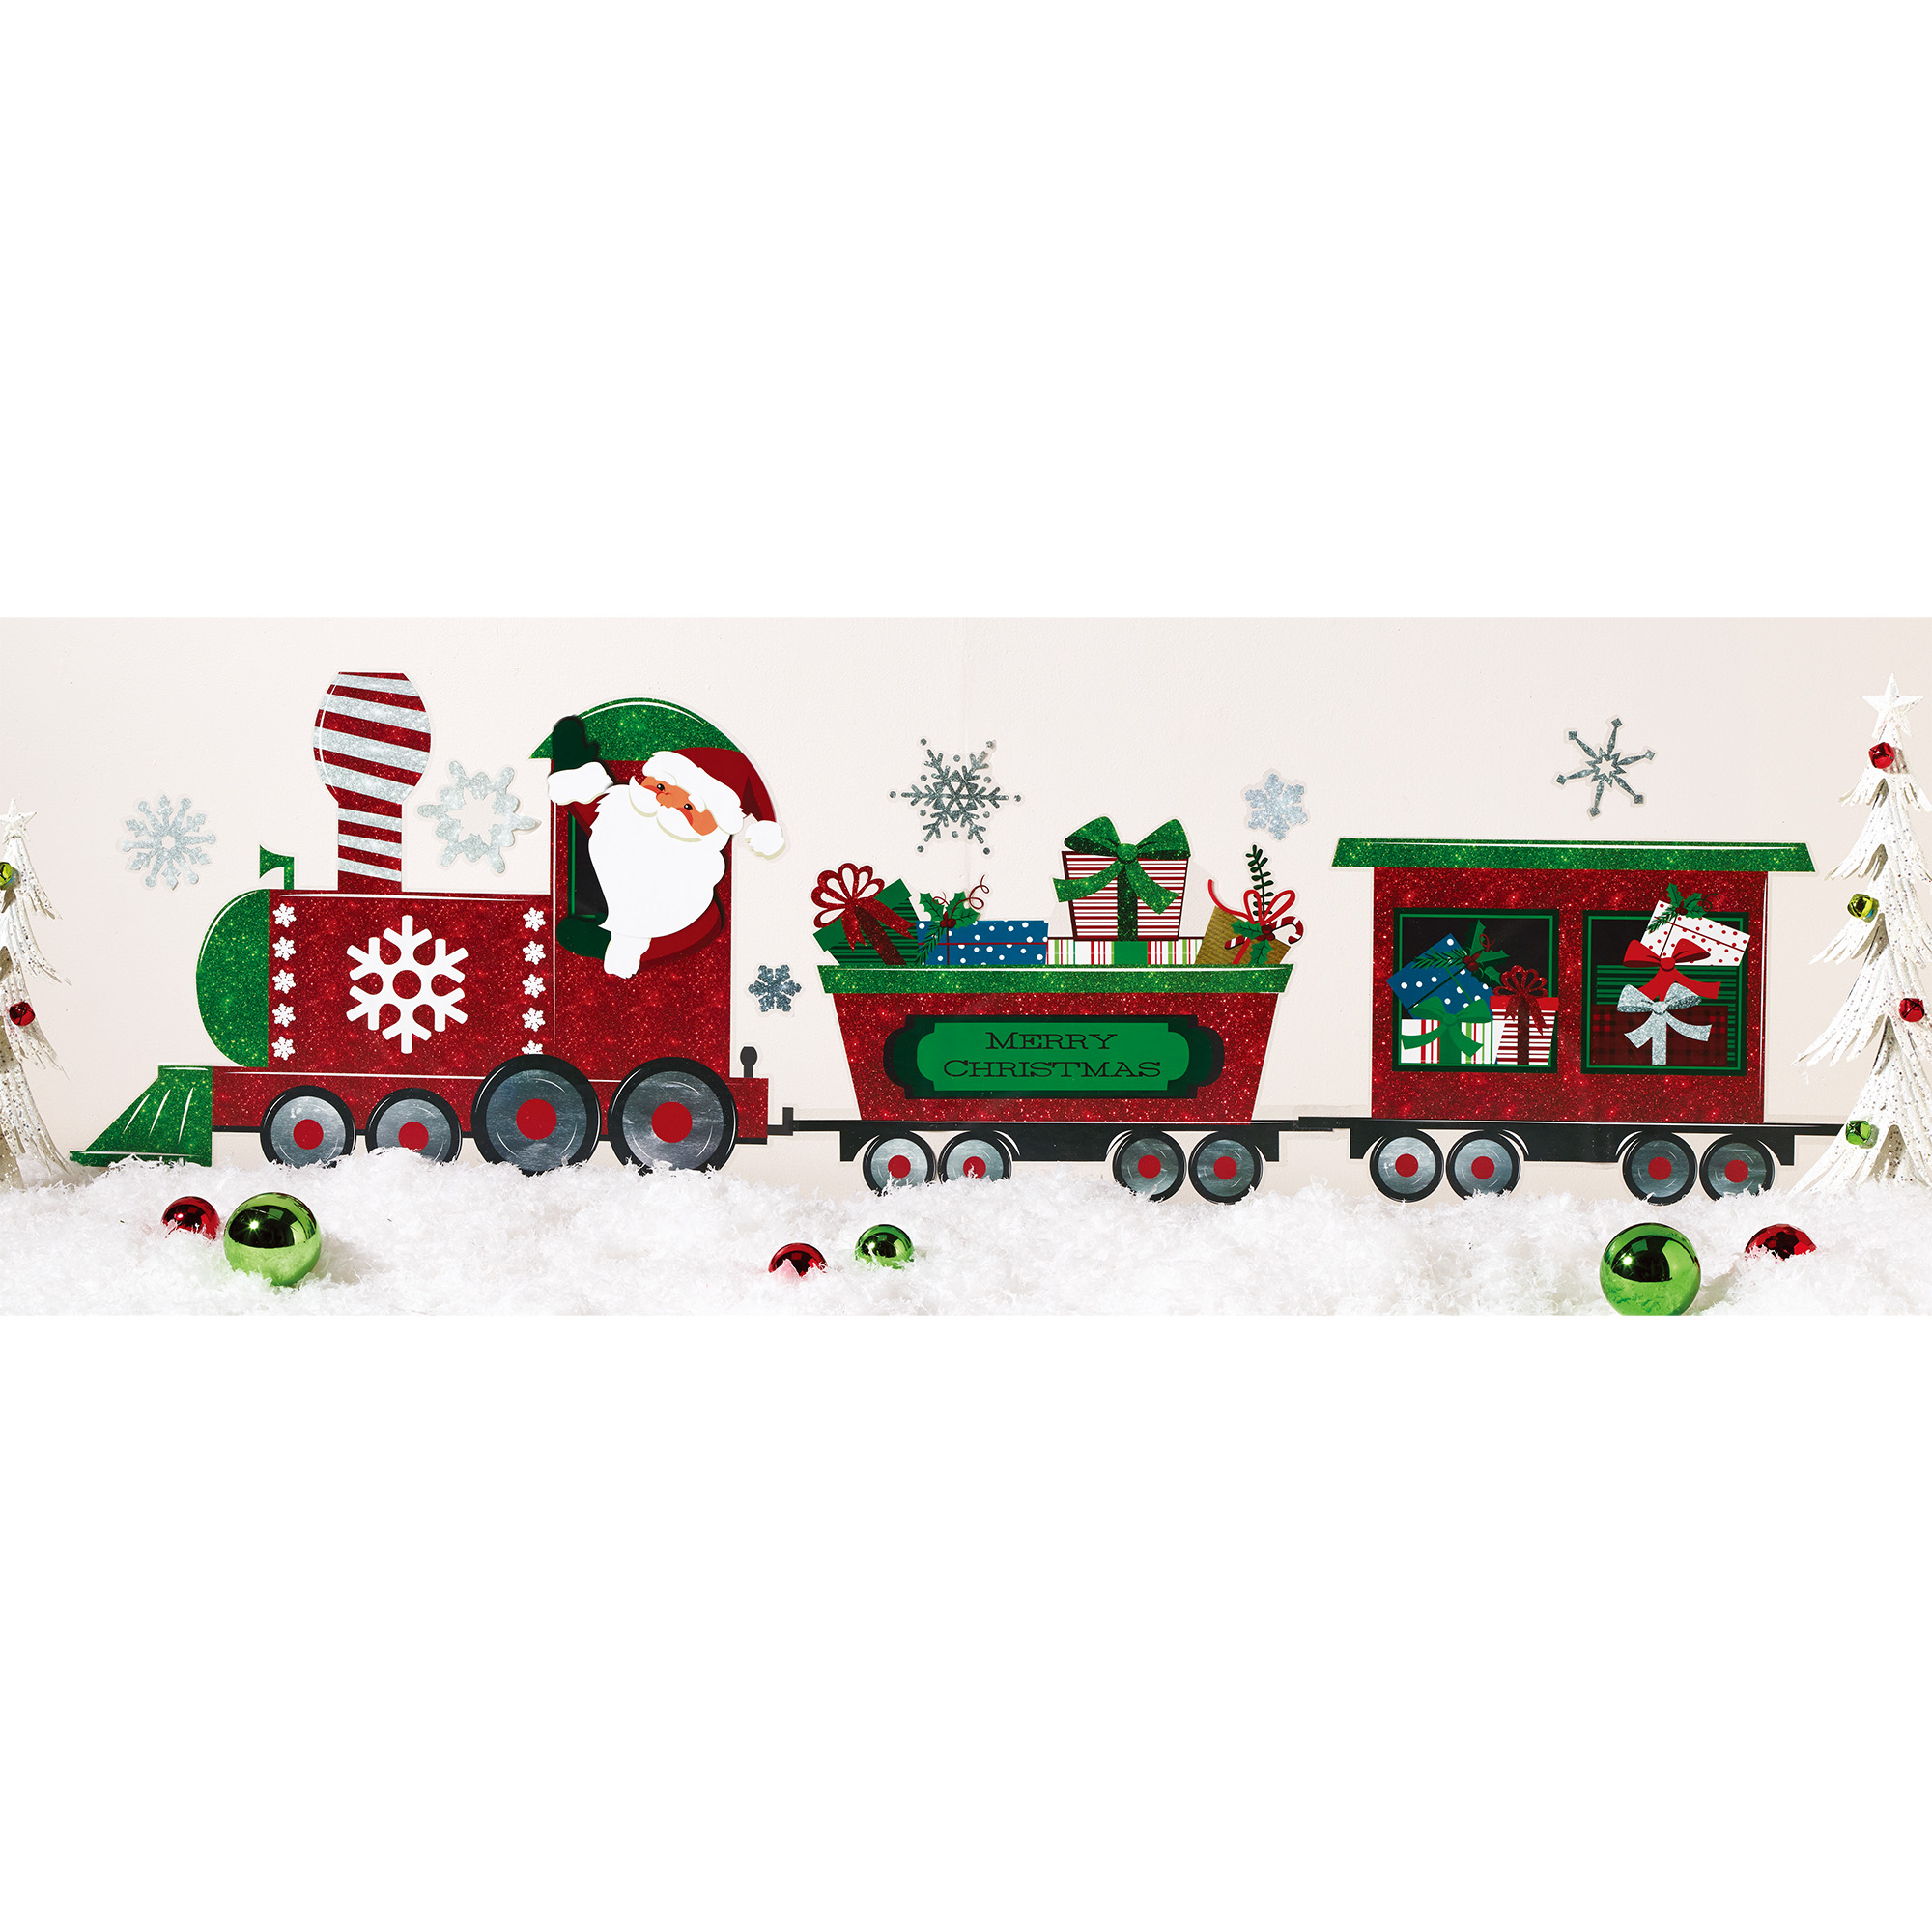 Train Wall Art holiday time build a train wall art, 39 x 27.5 inch - walmart